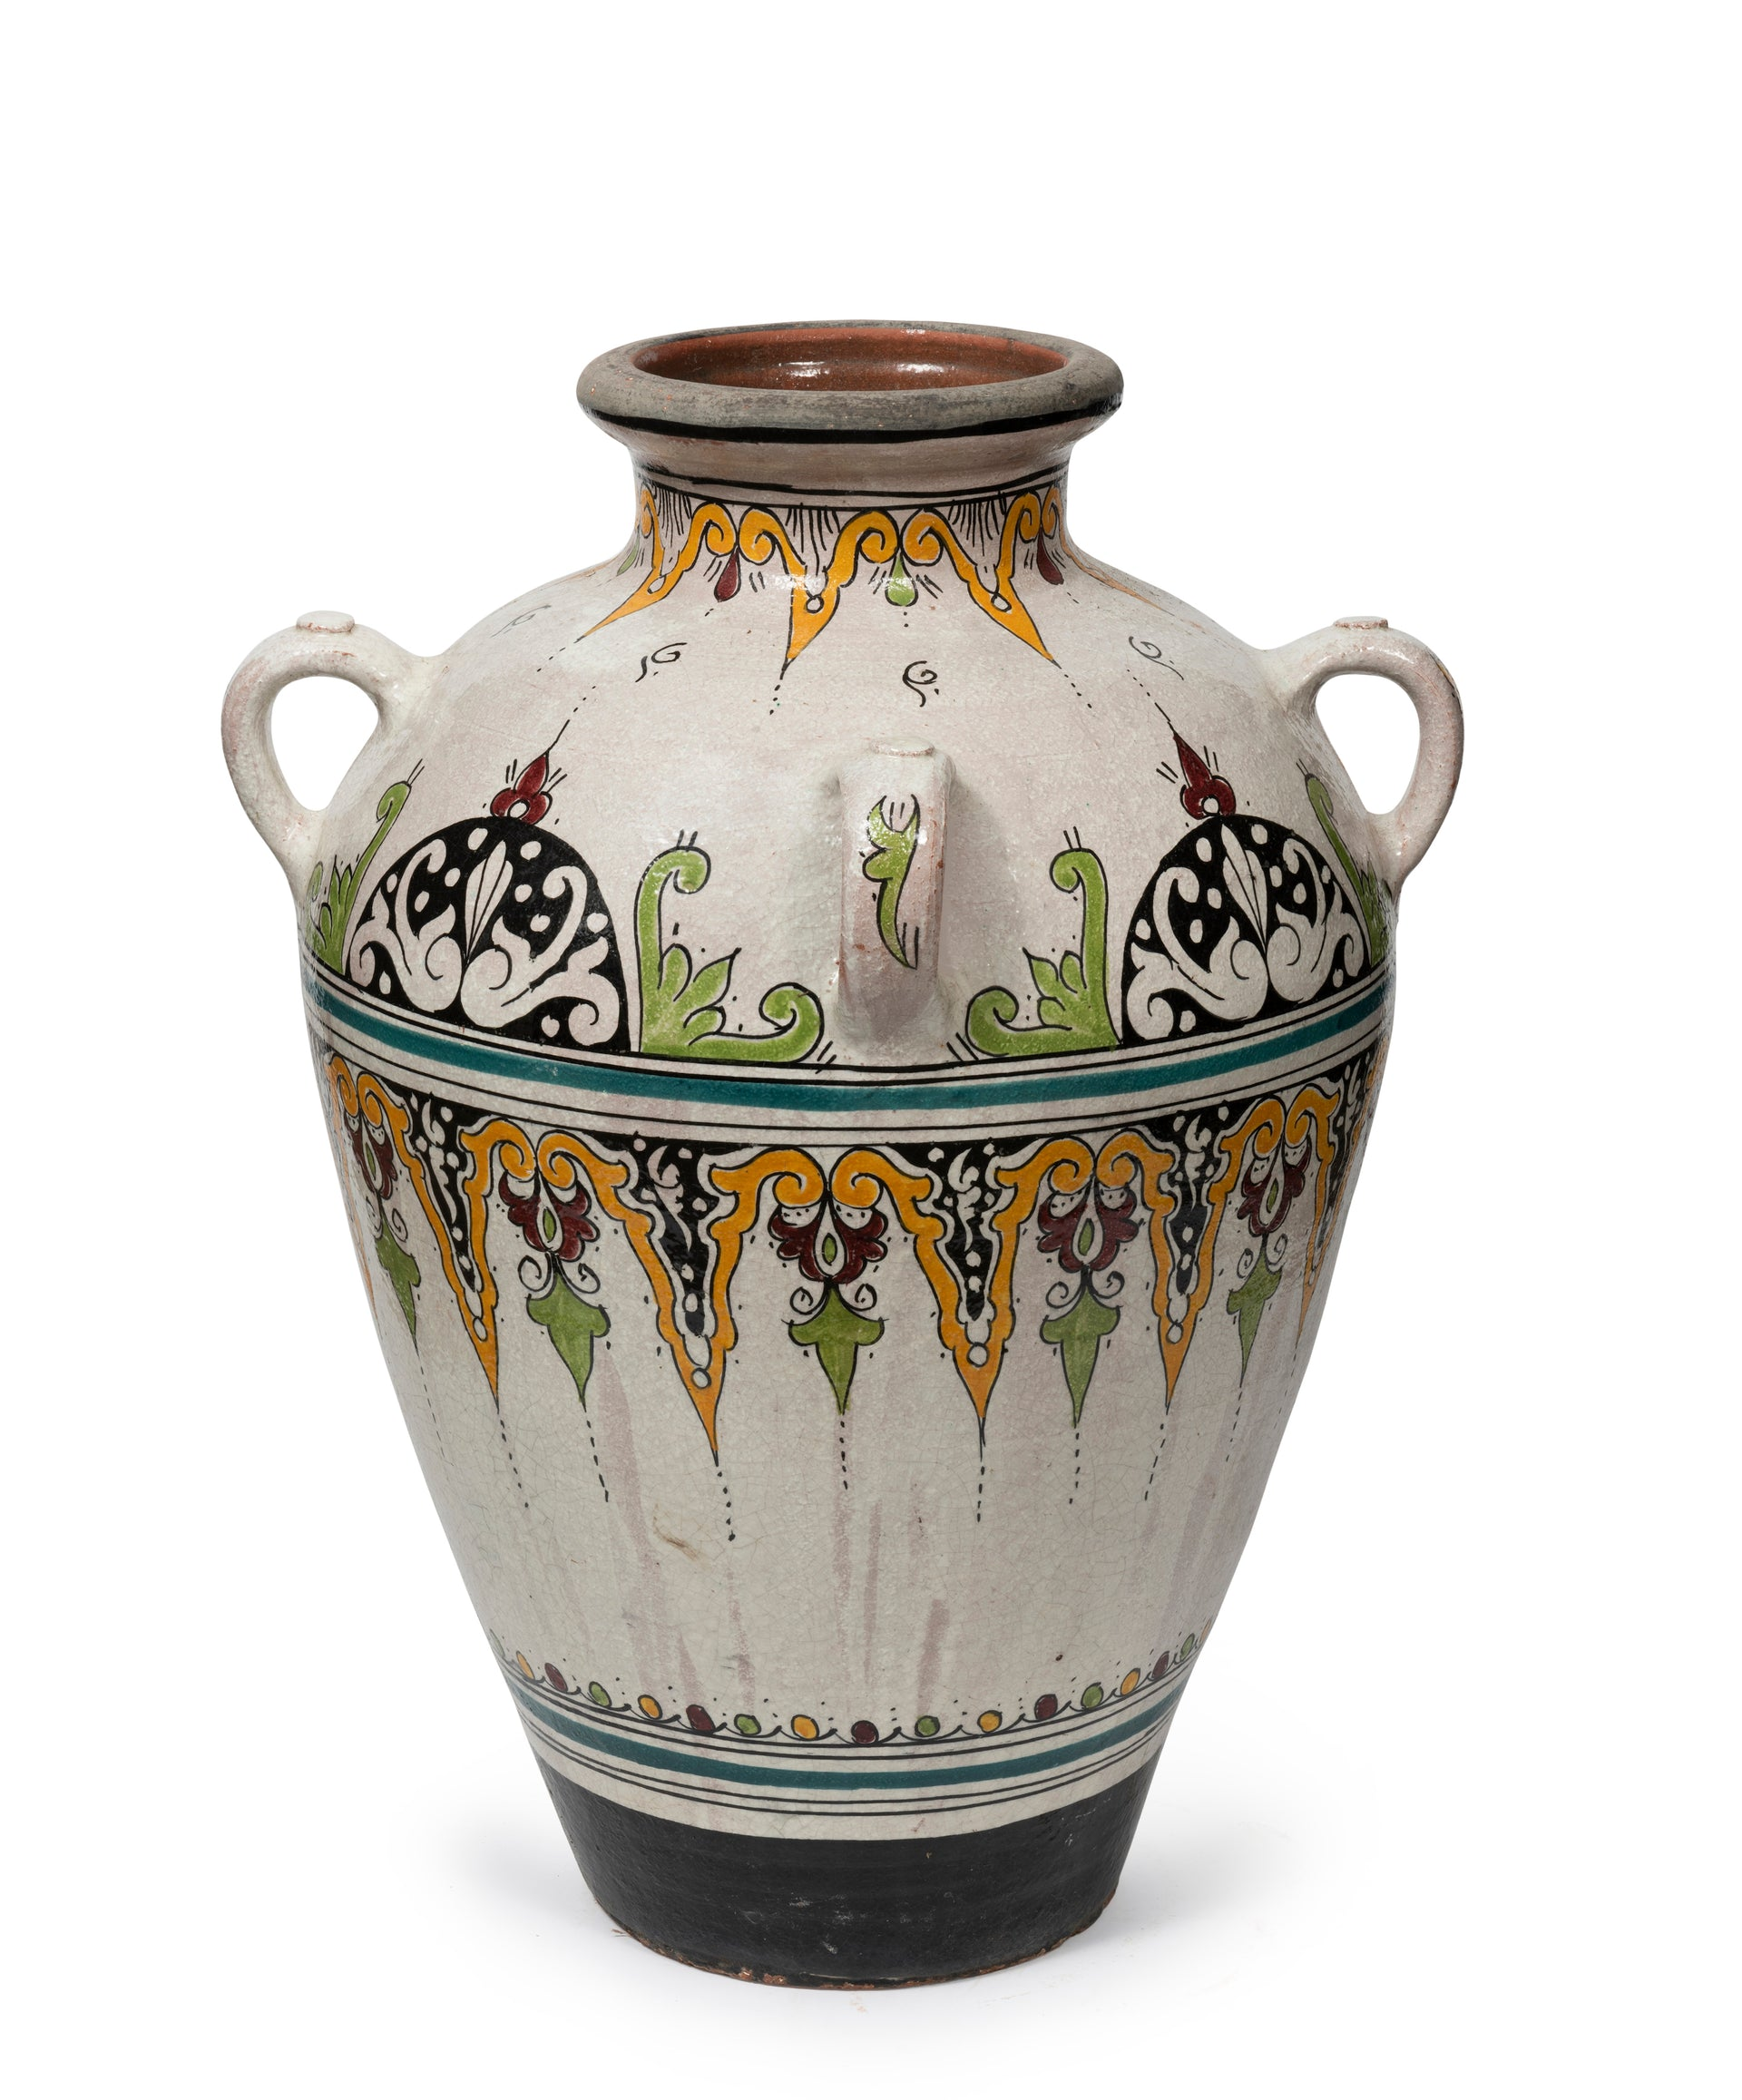 SOLD A Moroccan glazed and beautifully painted terracotta amphora